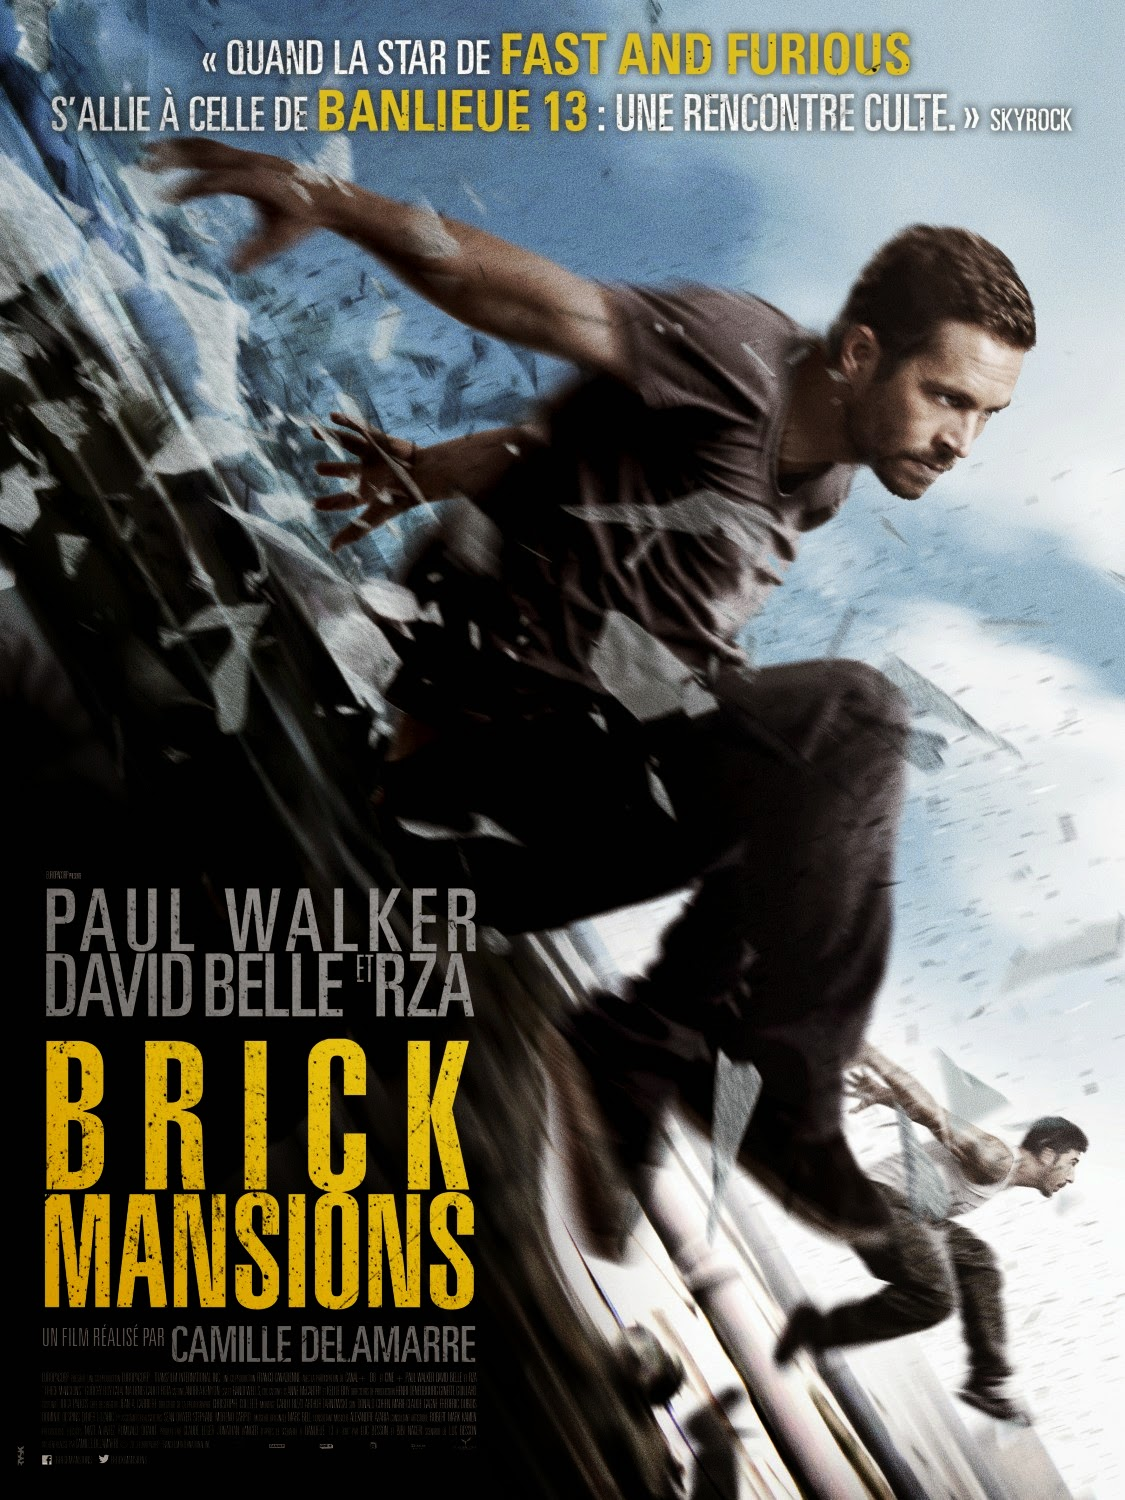 Brick Mansions [2014] [BrRip] [Latino e Ingles]